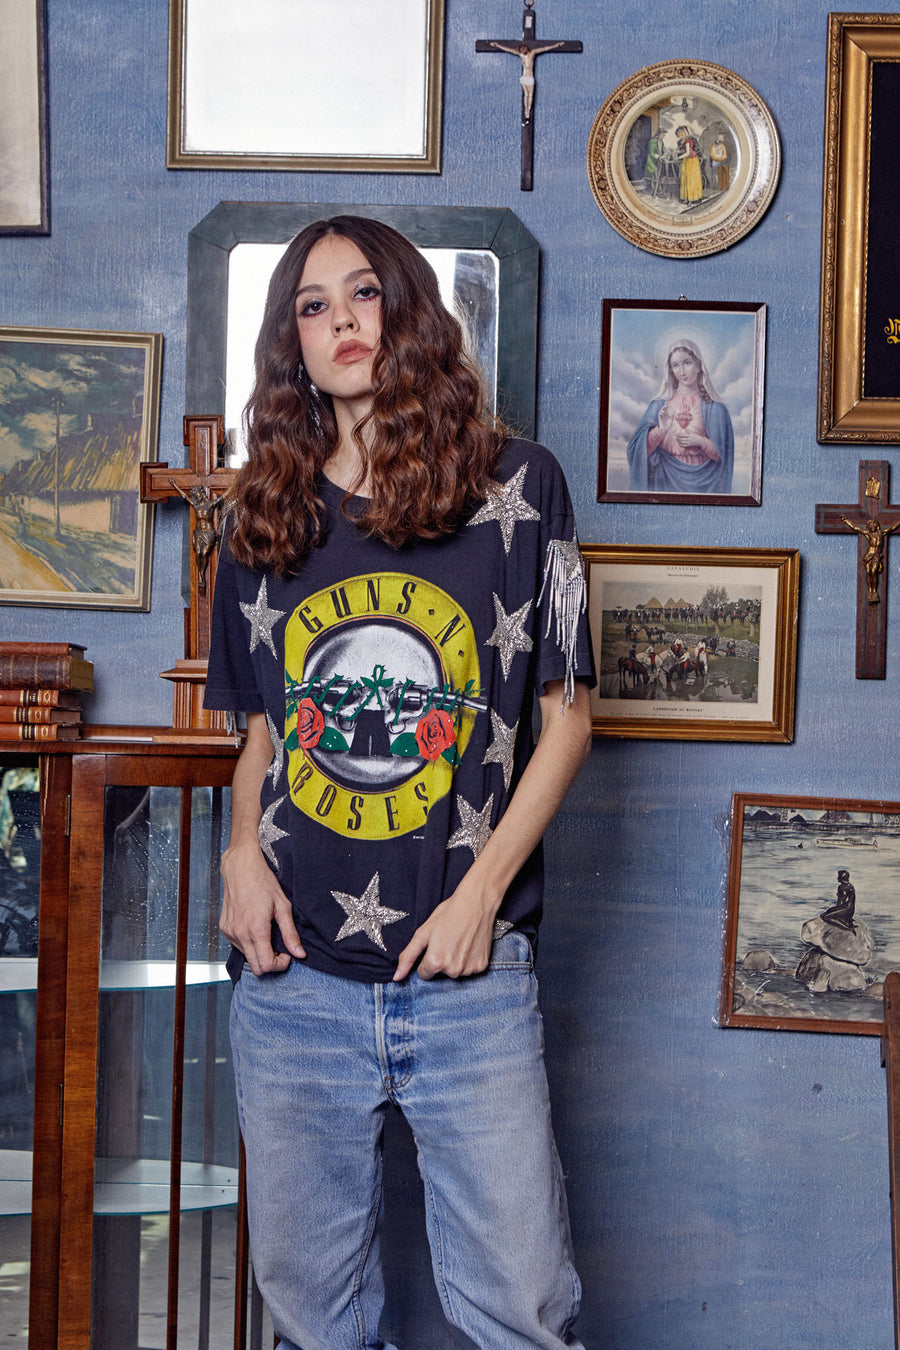 Star Spangled Top - Guns N Roses Was Here - I LOVE DIY by Panida